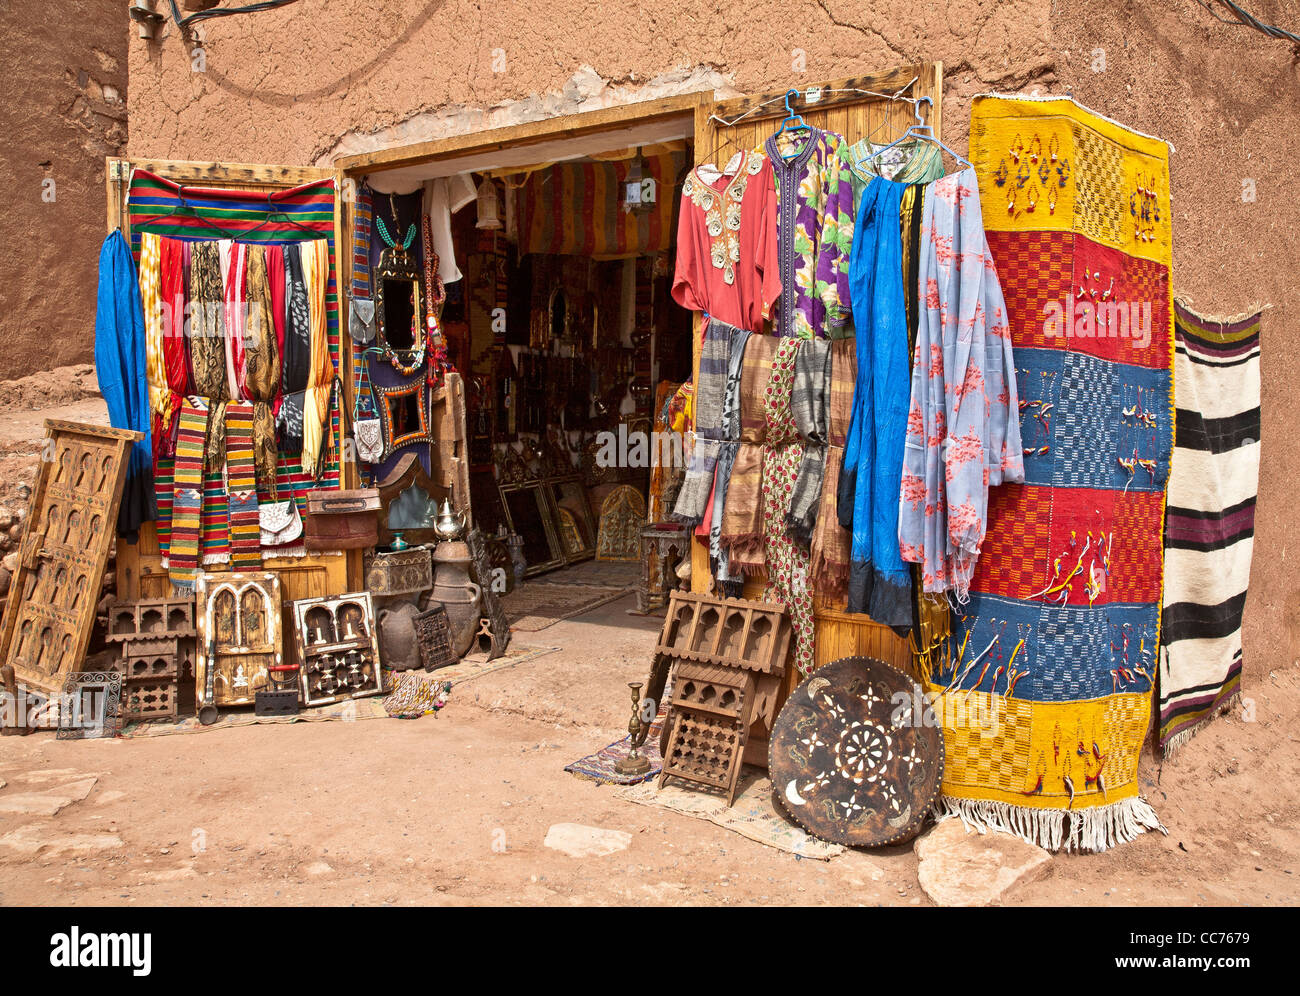 A tourist shop at Ait Bennadhou in Morocco - Stock Image